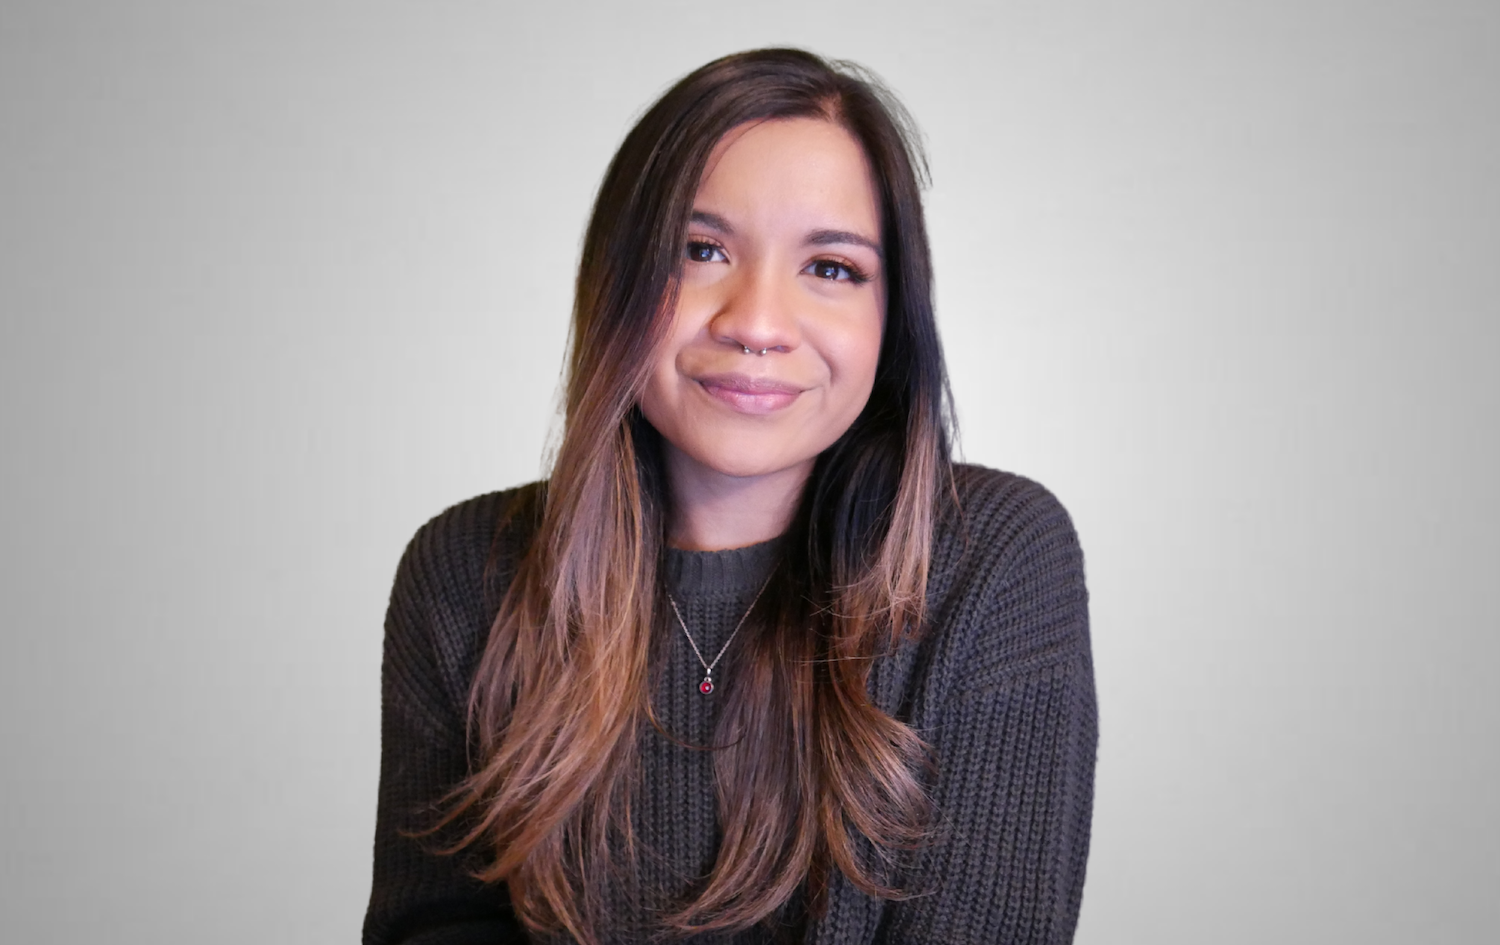 Episode 12:The Importance of Sharing Customer Stories with Winona Rajamohan, Senior Content Marketing Specialist at Hiretual